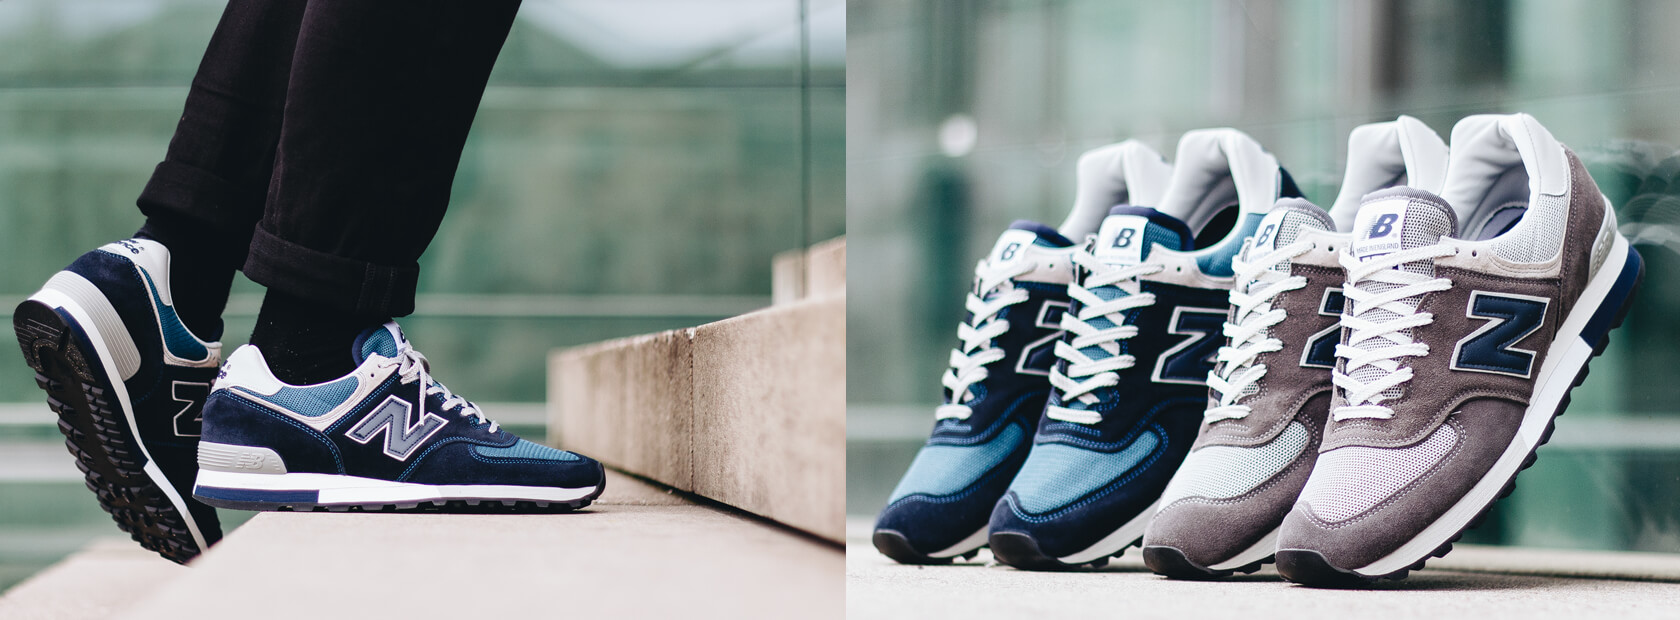 New Balance M576 - Made in England